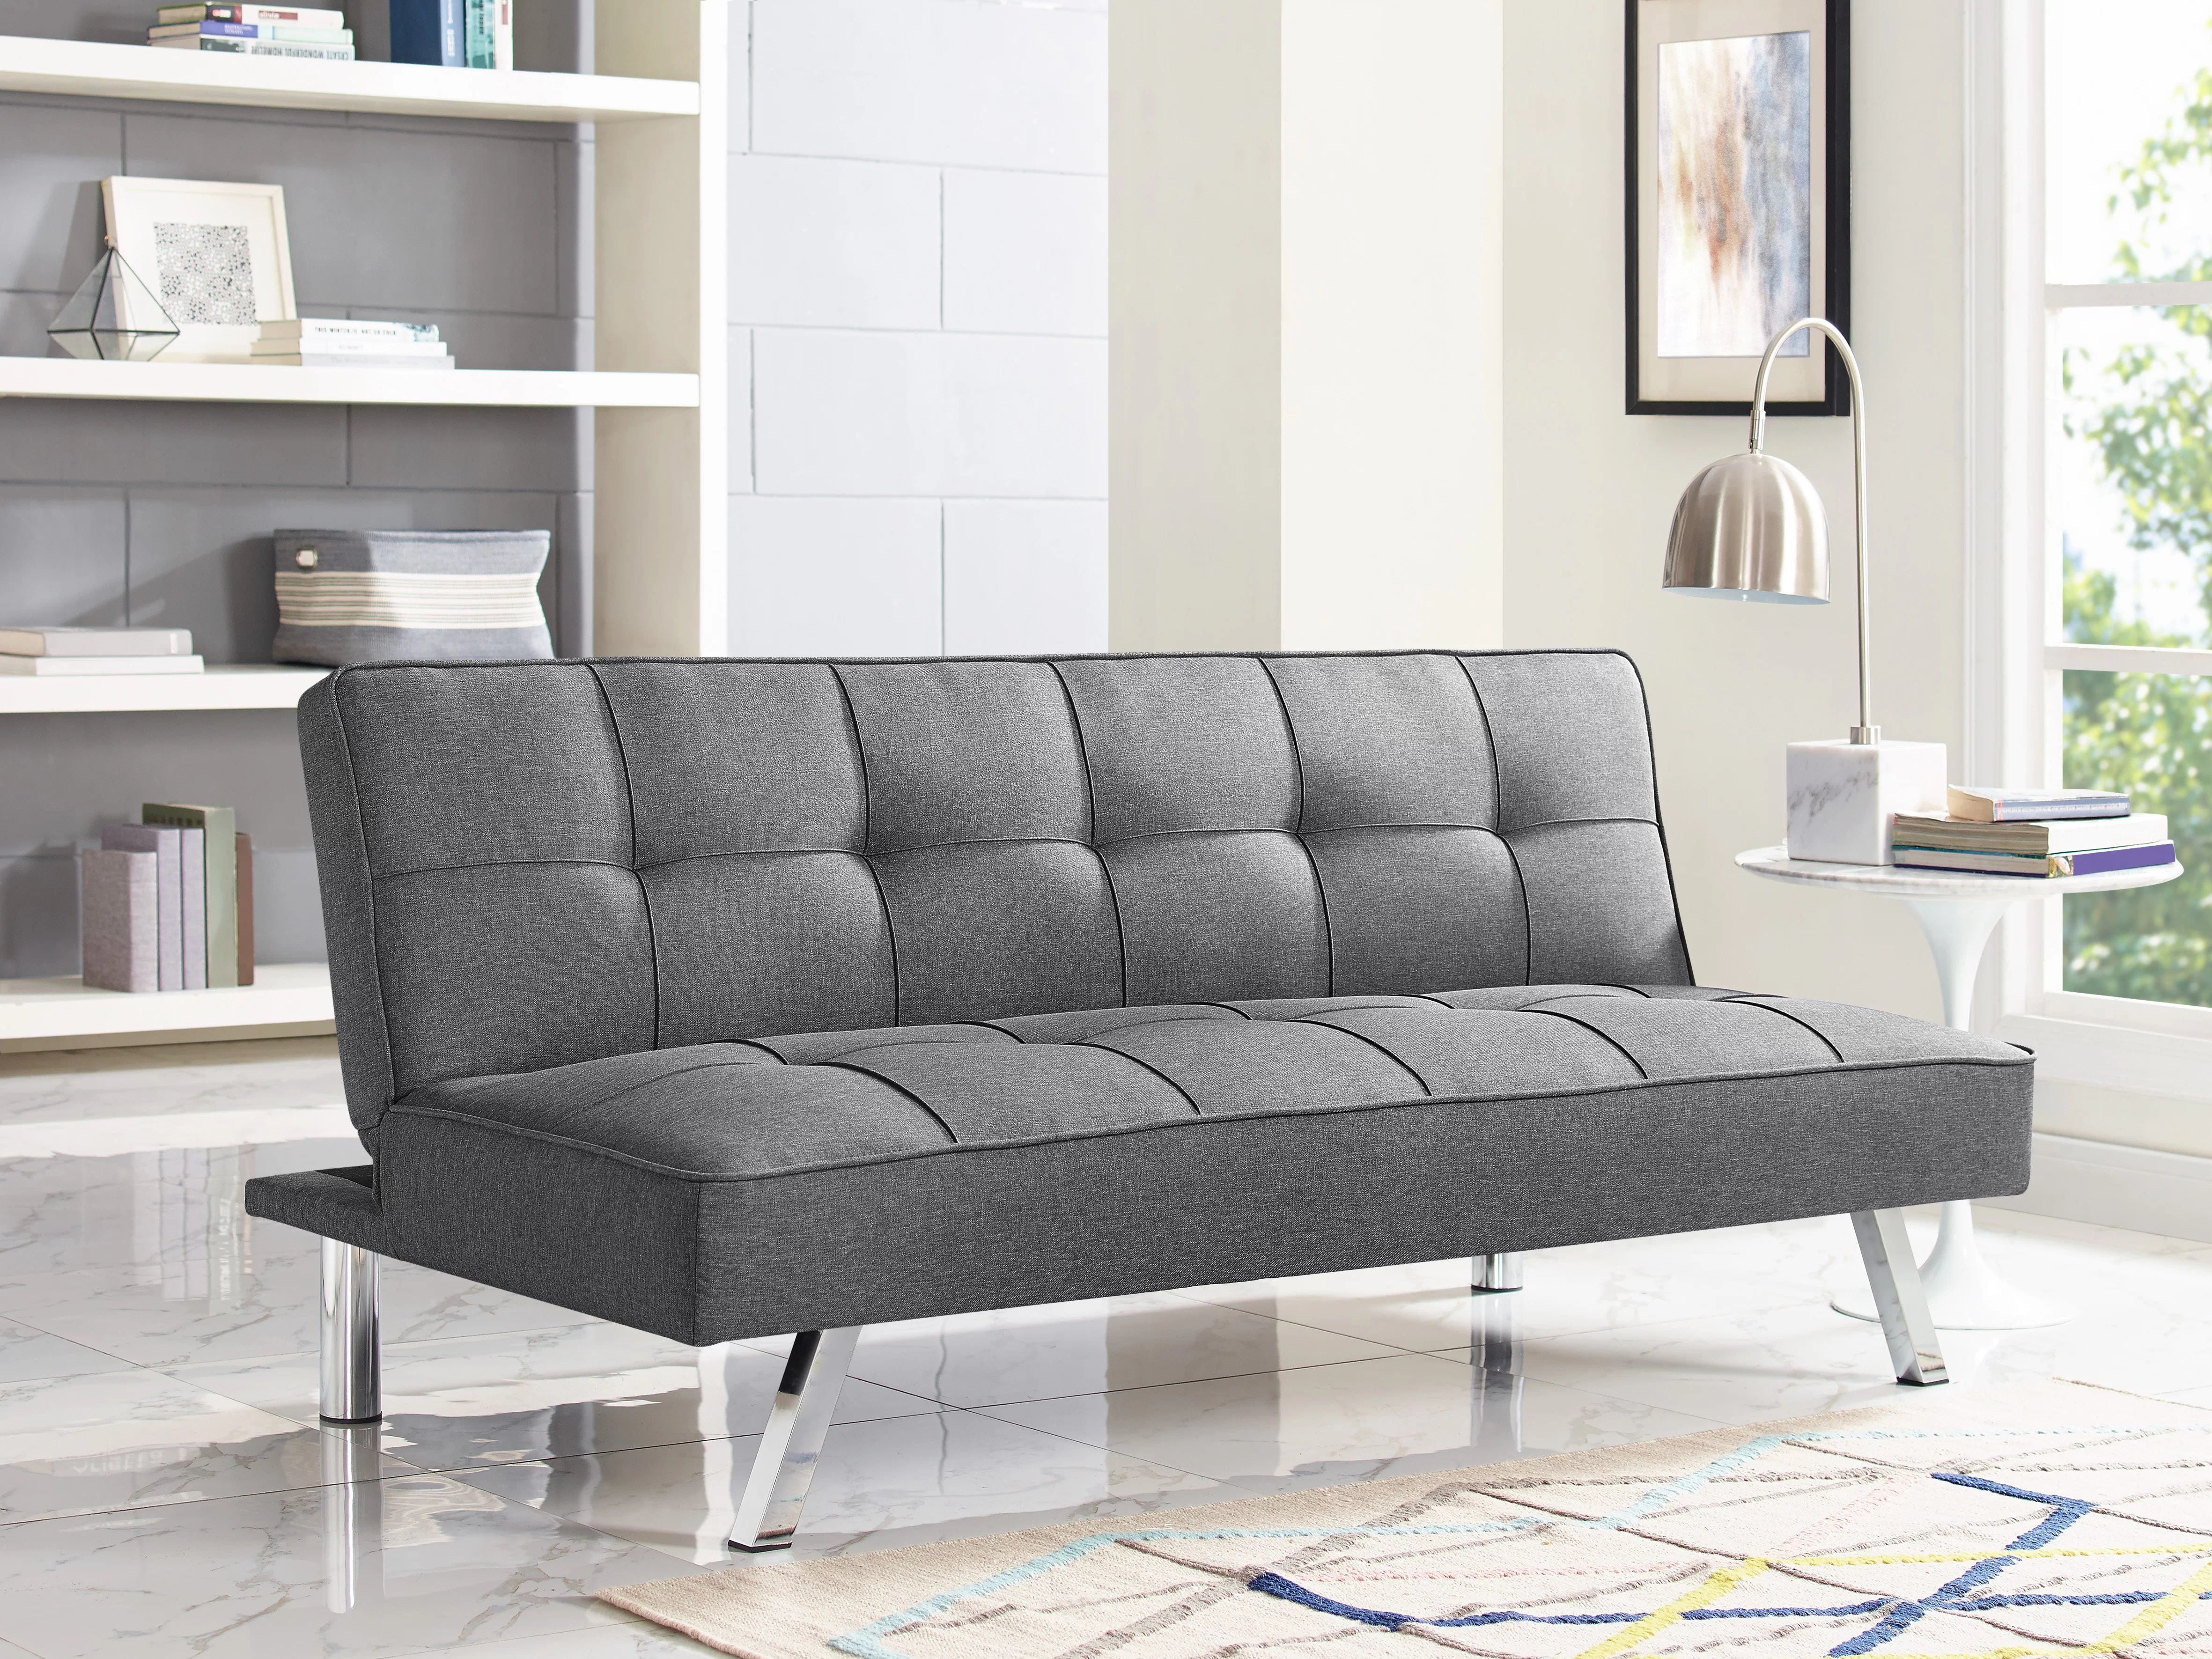 tomas fabric sofa chaise convertible bed dark java bauhaus sectional reviews serta dream wayfair quickview black charcoal